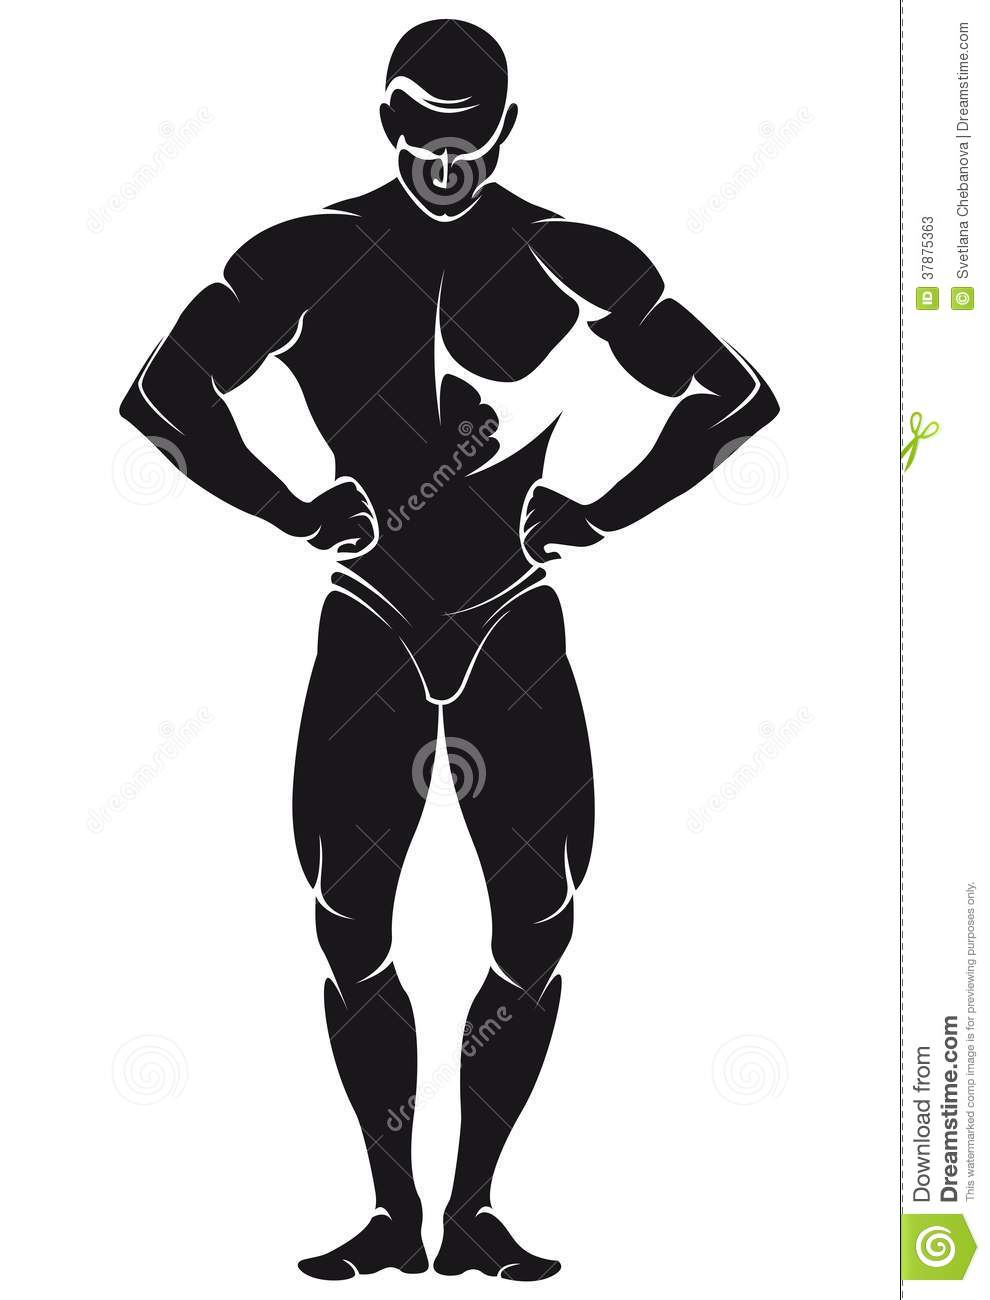 Vector Image With Bodybuilder, Silhouette Stock